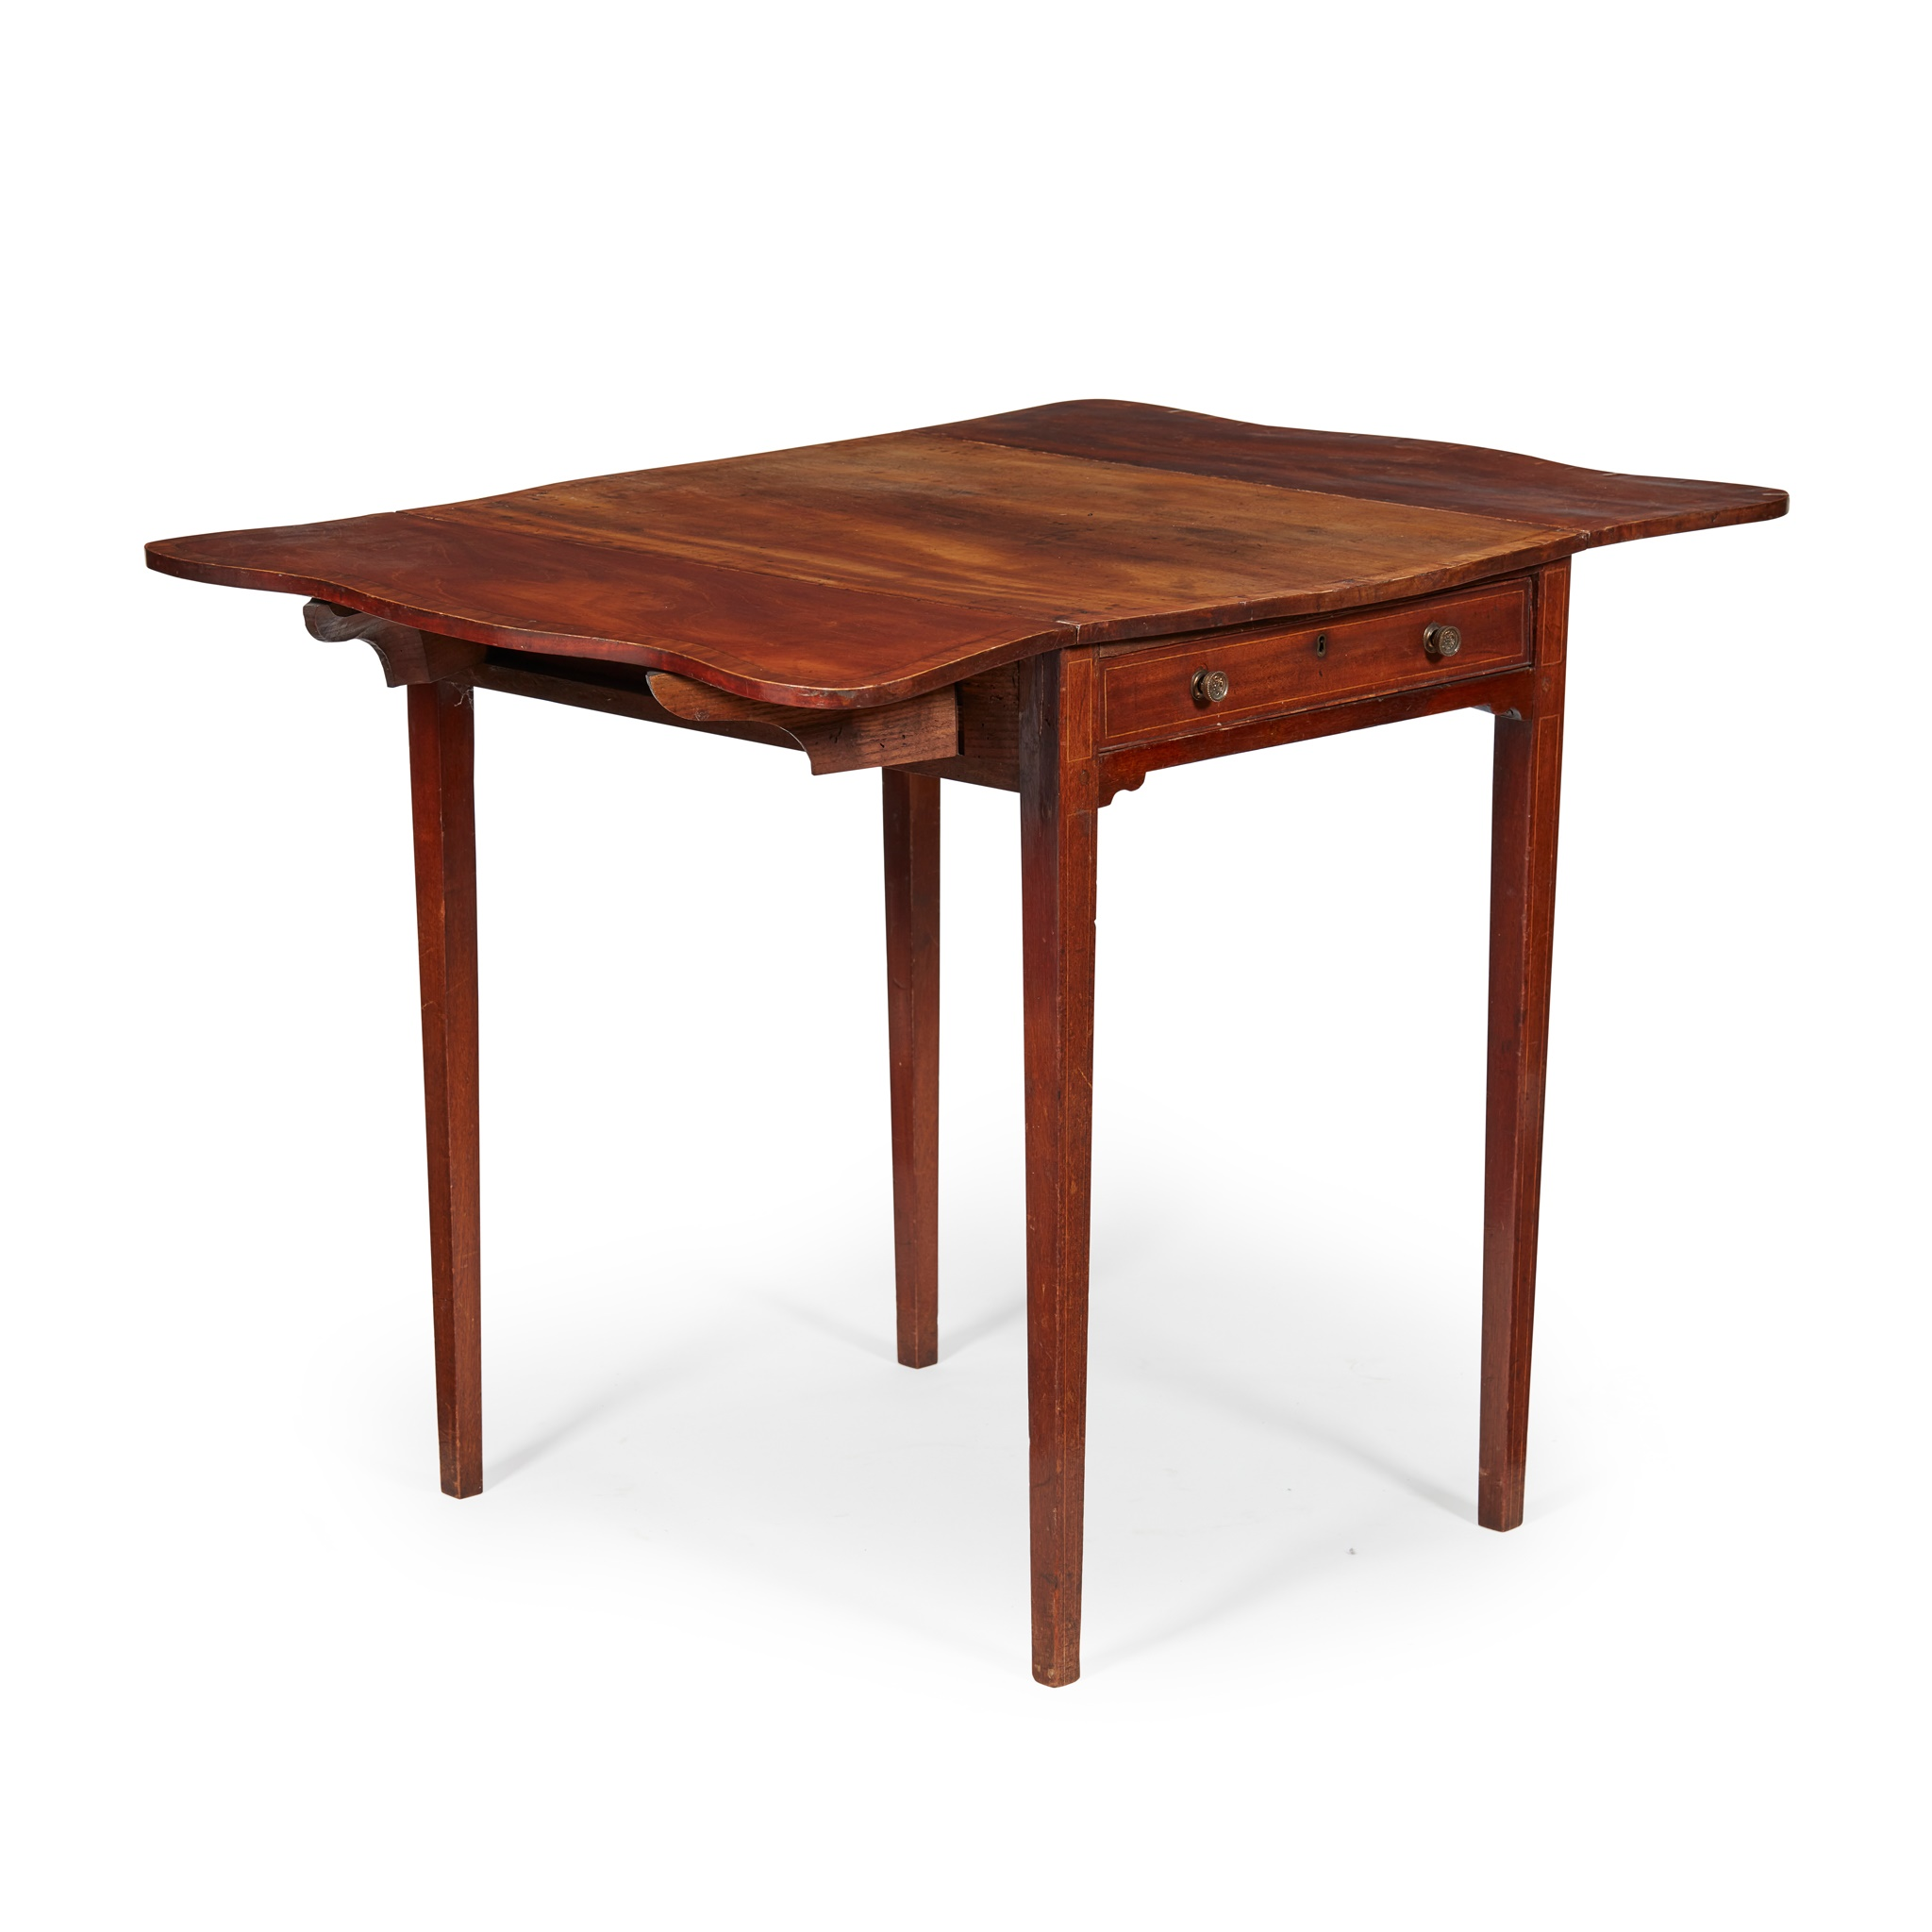 GEORGE II MAHOGANY AND SATINWOOD PEMBROKE TABLE LATE 18TH CENTURY - Image 2 of 2